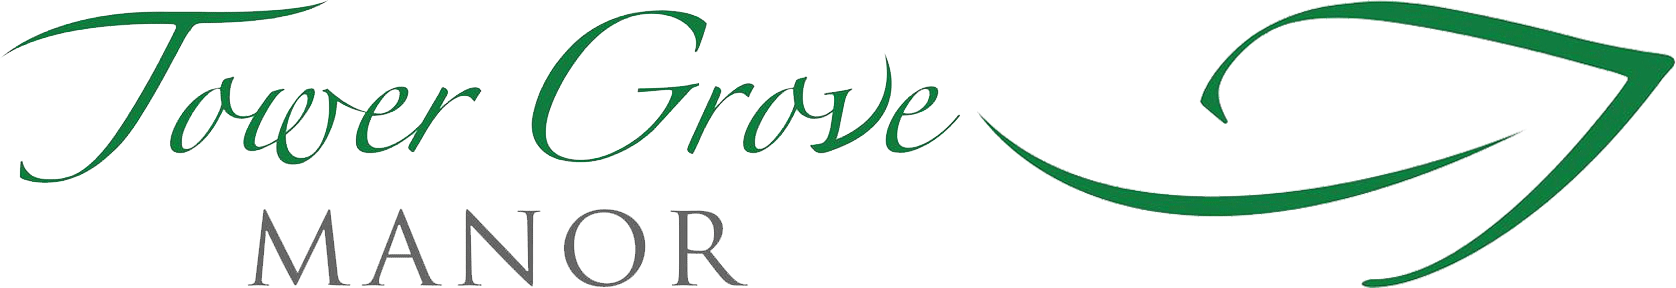 Tower Grove Manor Logo